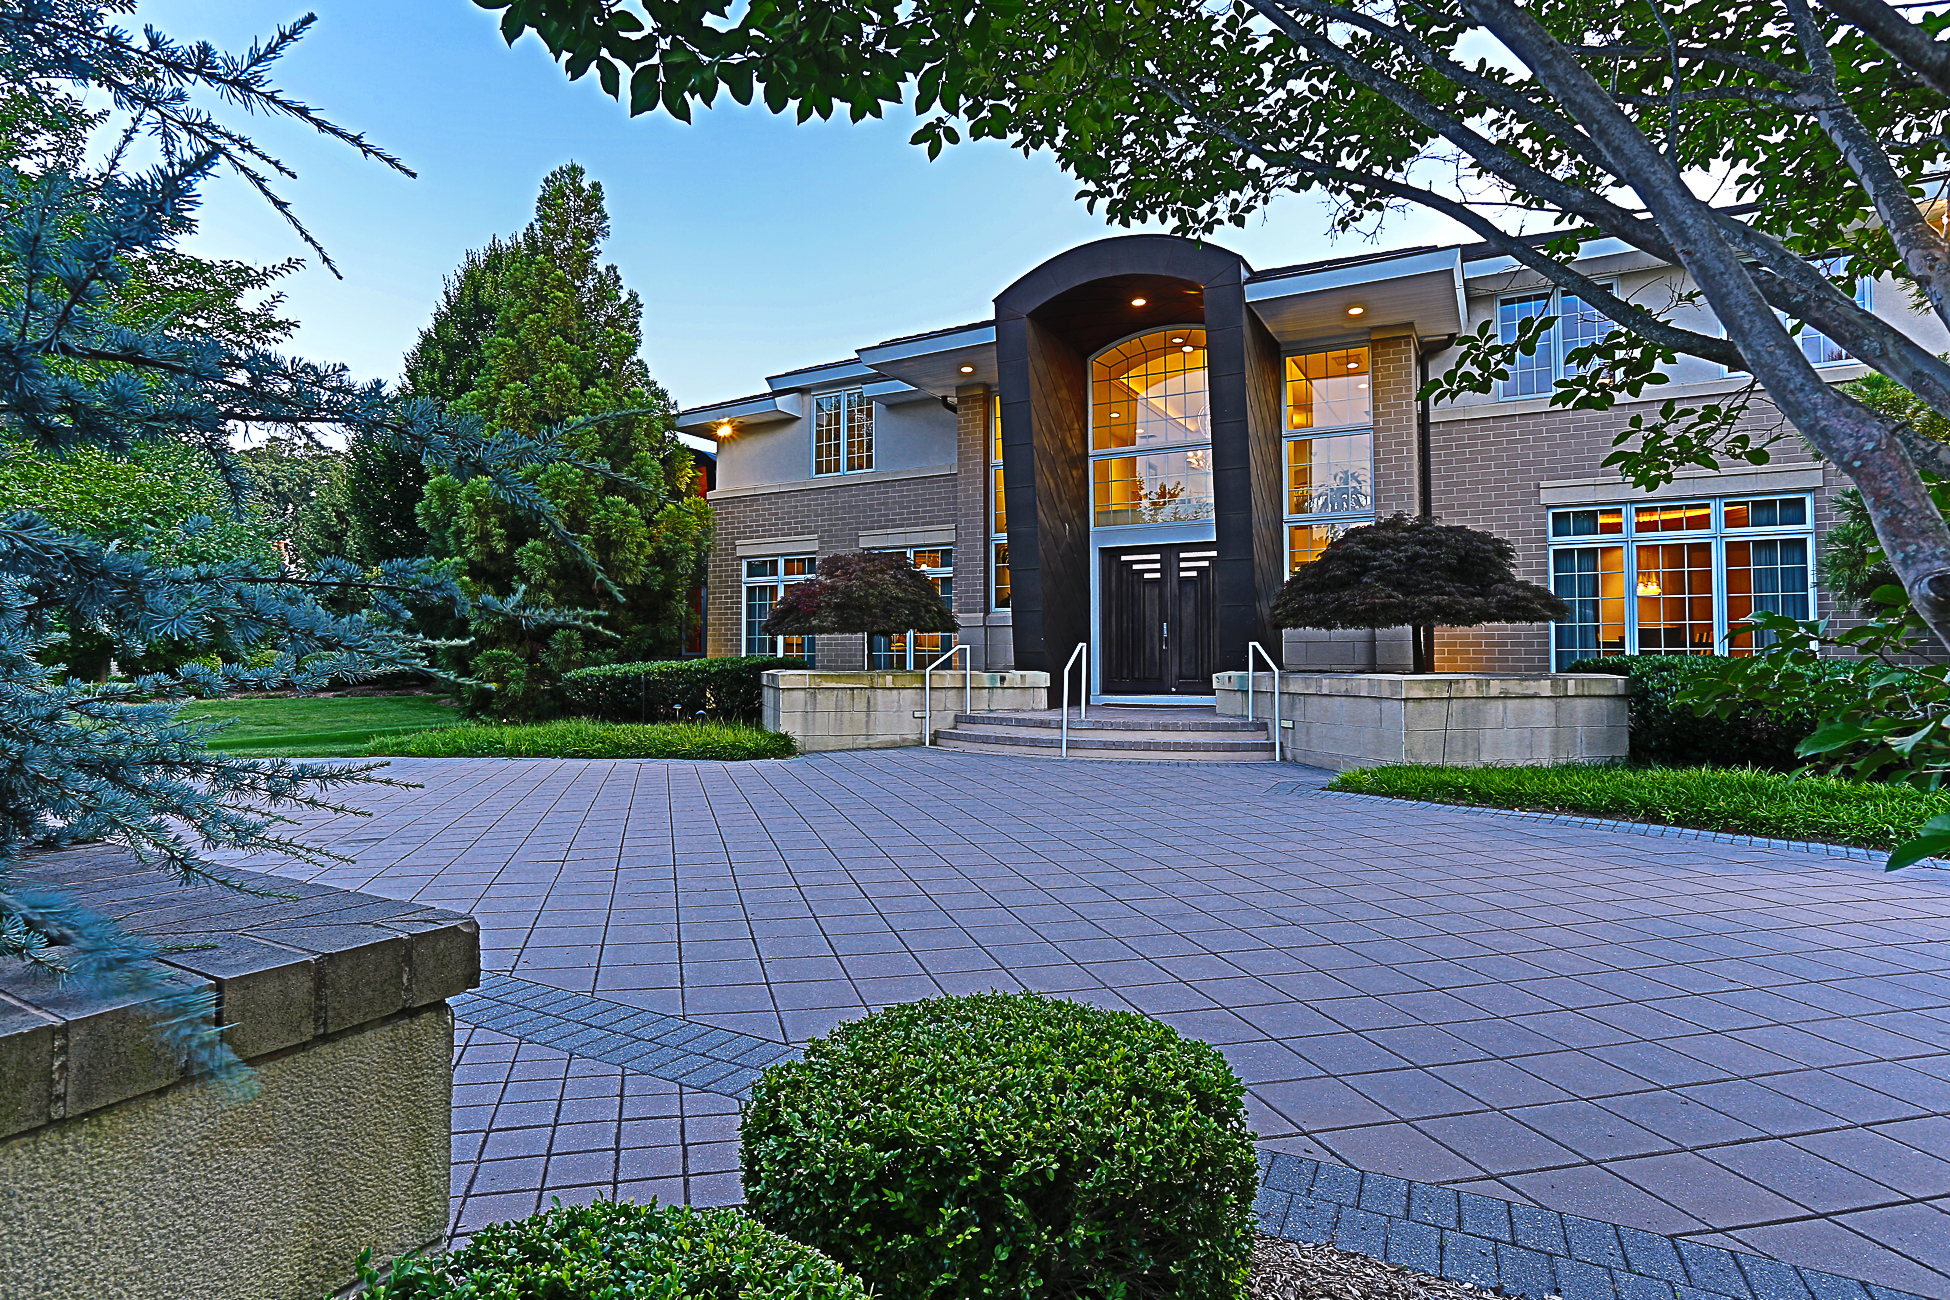 独户住宅 为 销售 在 Masterfully Designed - East Brunswick Township 5 Bel Air Court 东布朗士维克, 08816 美国